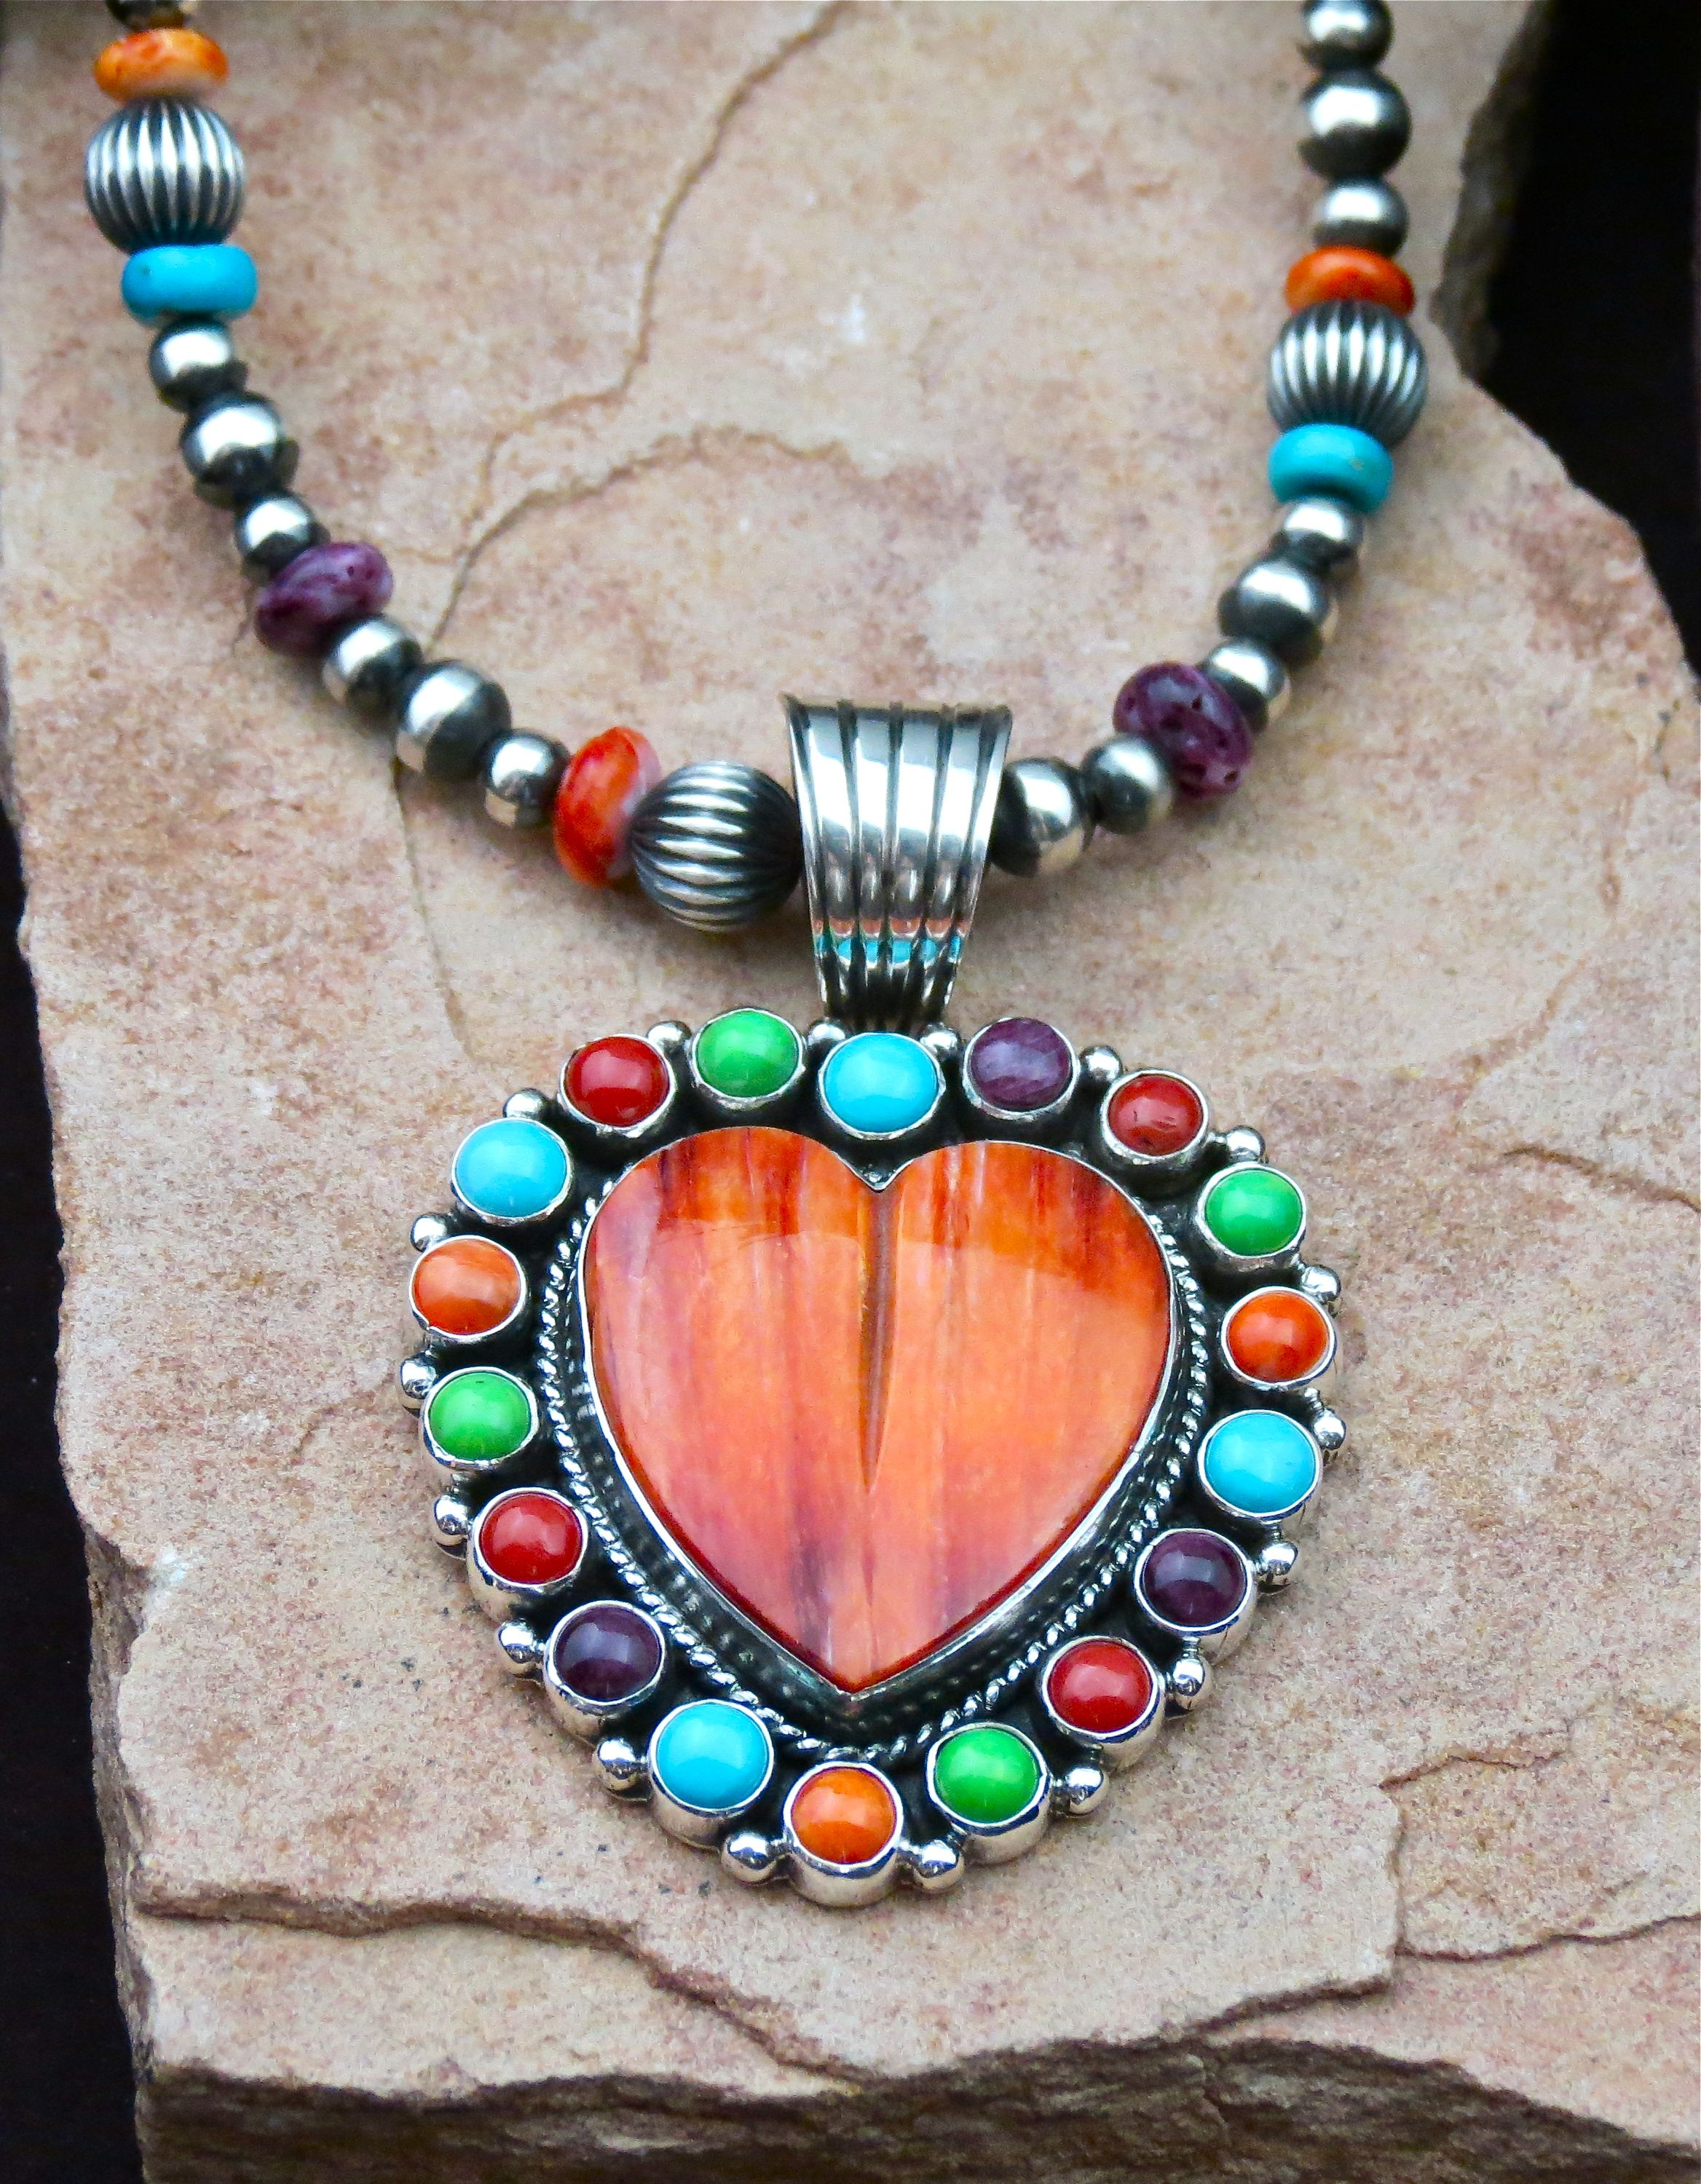 #spinyoystershell Heart shaped necklace and pendant from designer #EricBonecutter available at www.spiritofsantafe.com